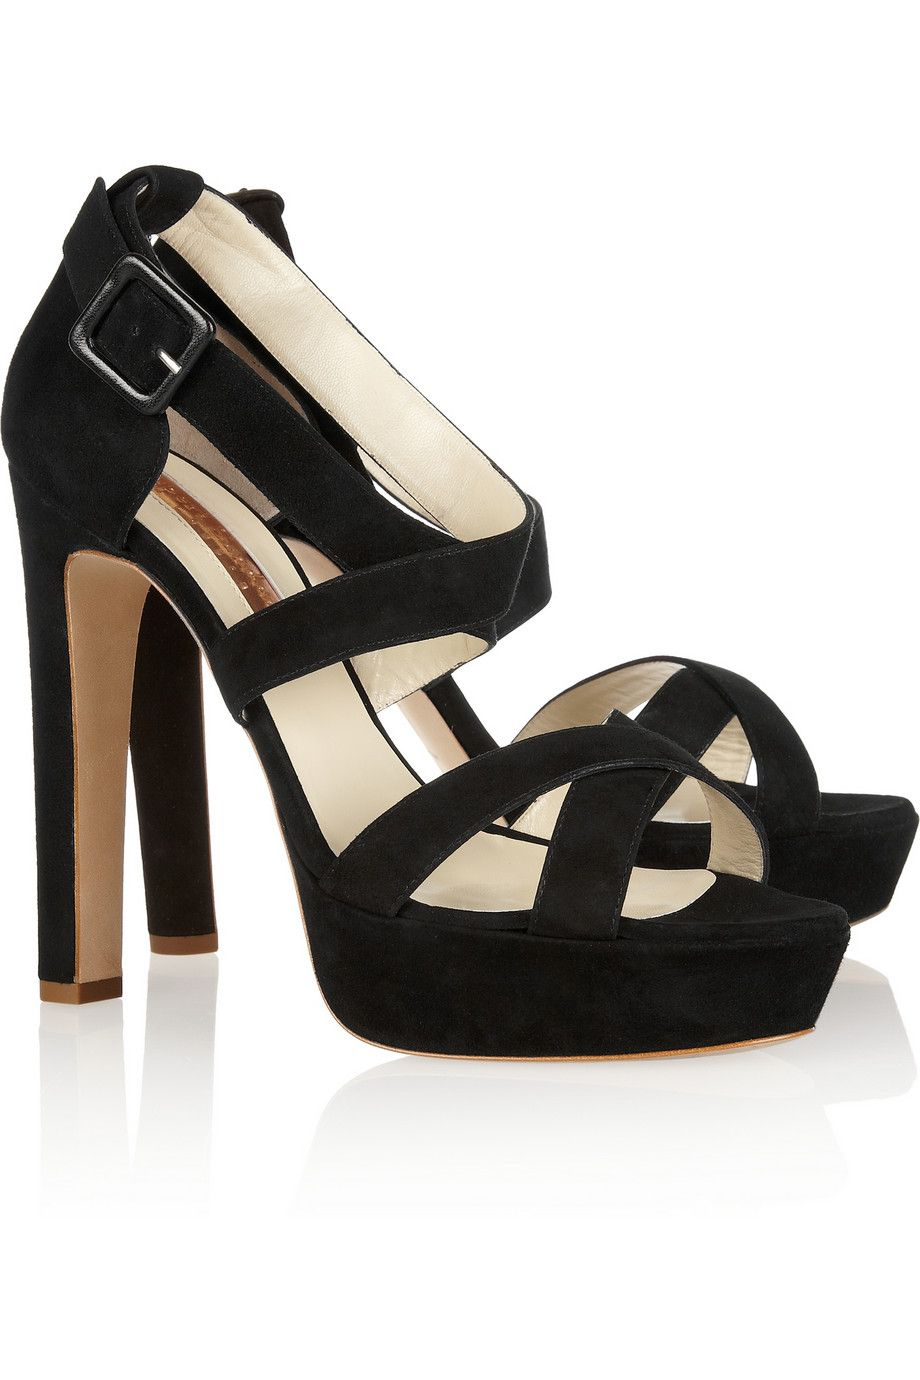 best wholesale cheap price discount many kinds of Rupert Sanderson Patent Leather Multistrap Sandals JtCCc